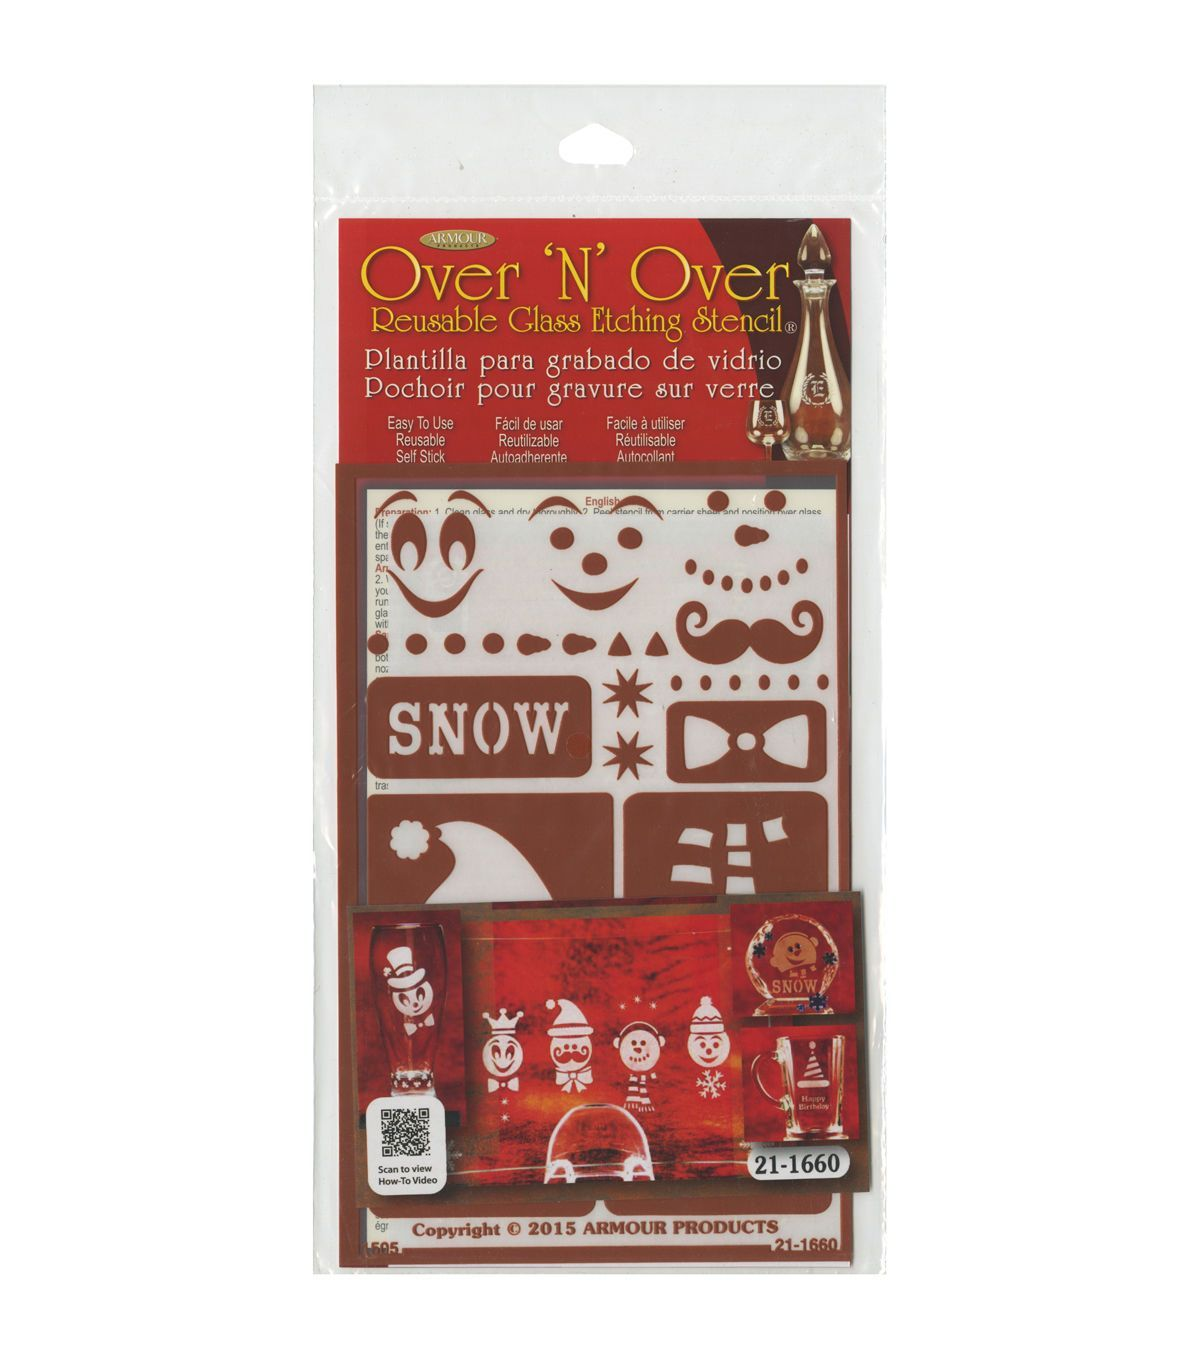 Armour Products Over N Over Reusable Glass Etching Stencil Snow Fun Glass Etching Stencils Glass Etching Snow Fun